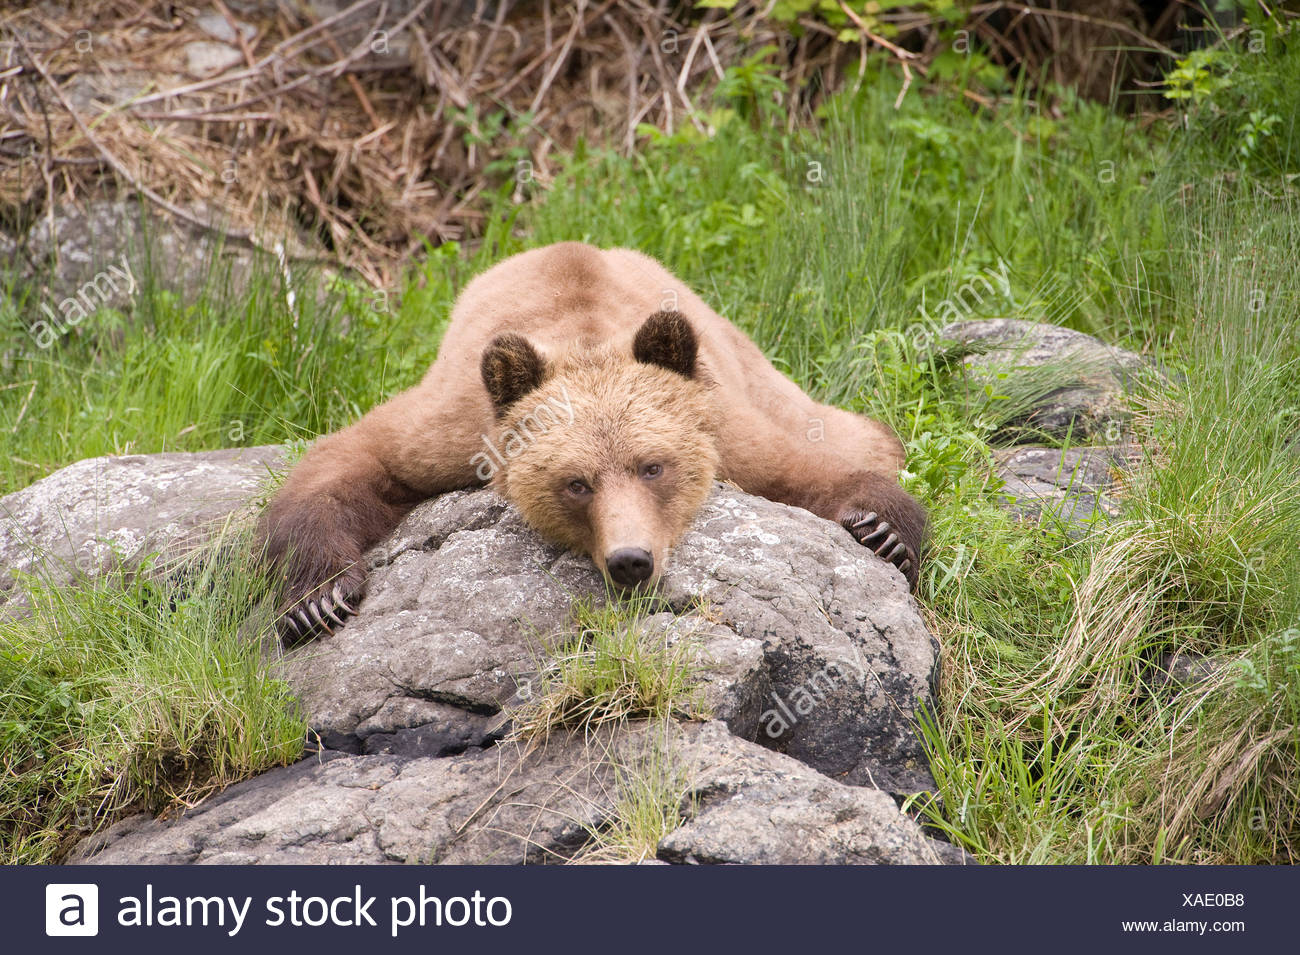 Grizzly bear Ursus arctos horribilis Knight Inlet British Columbia Stock Photo